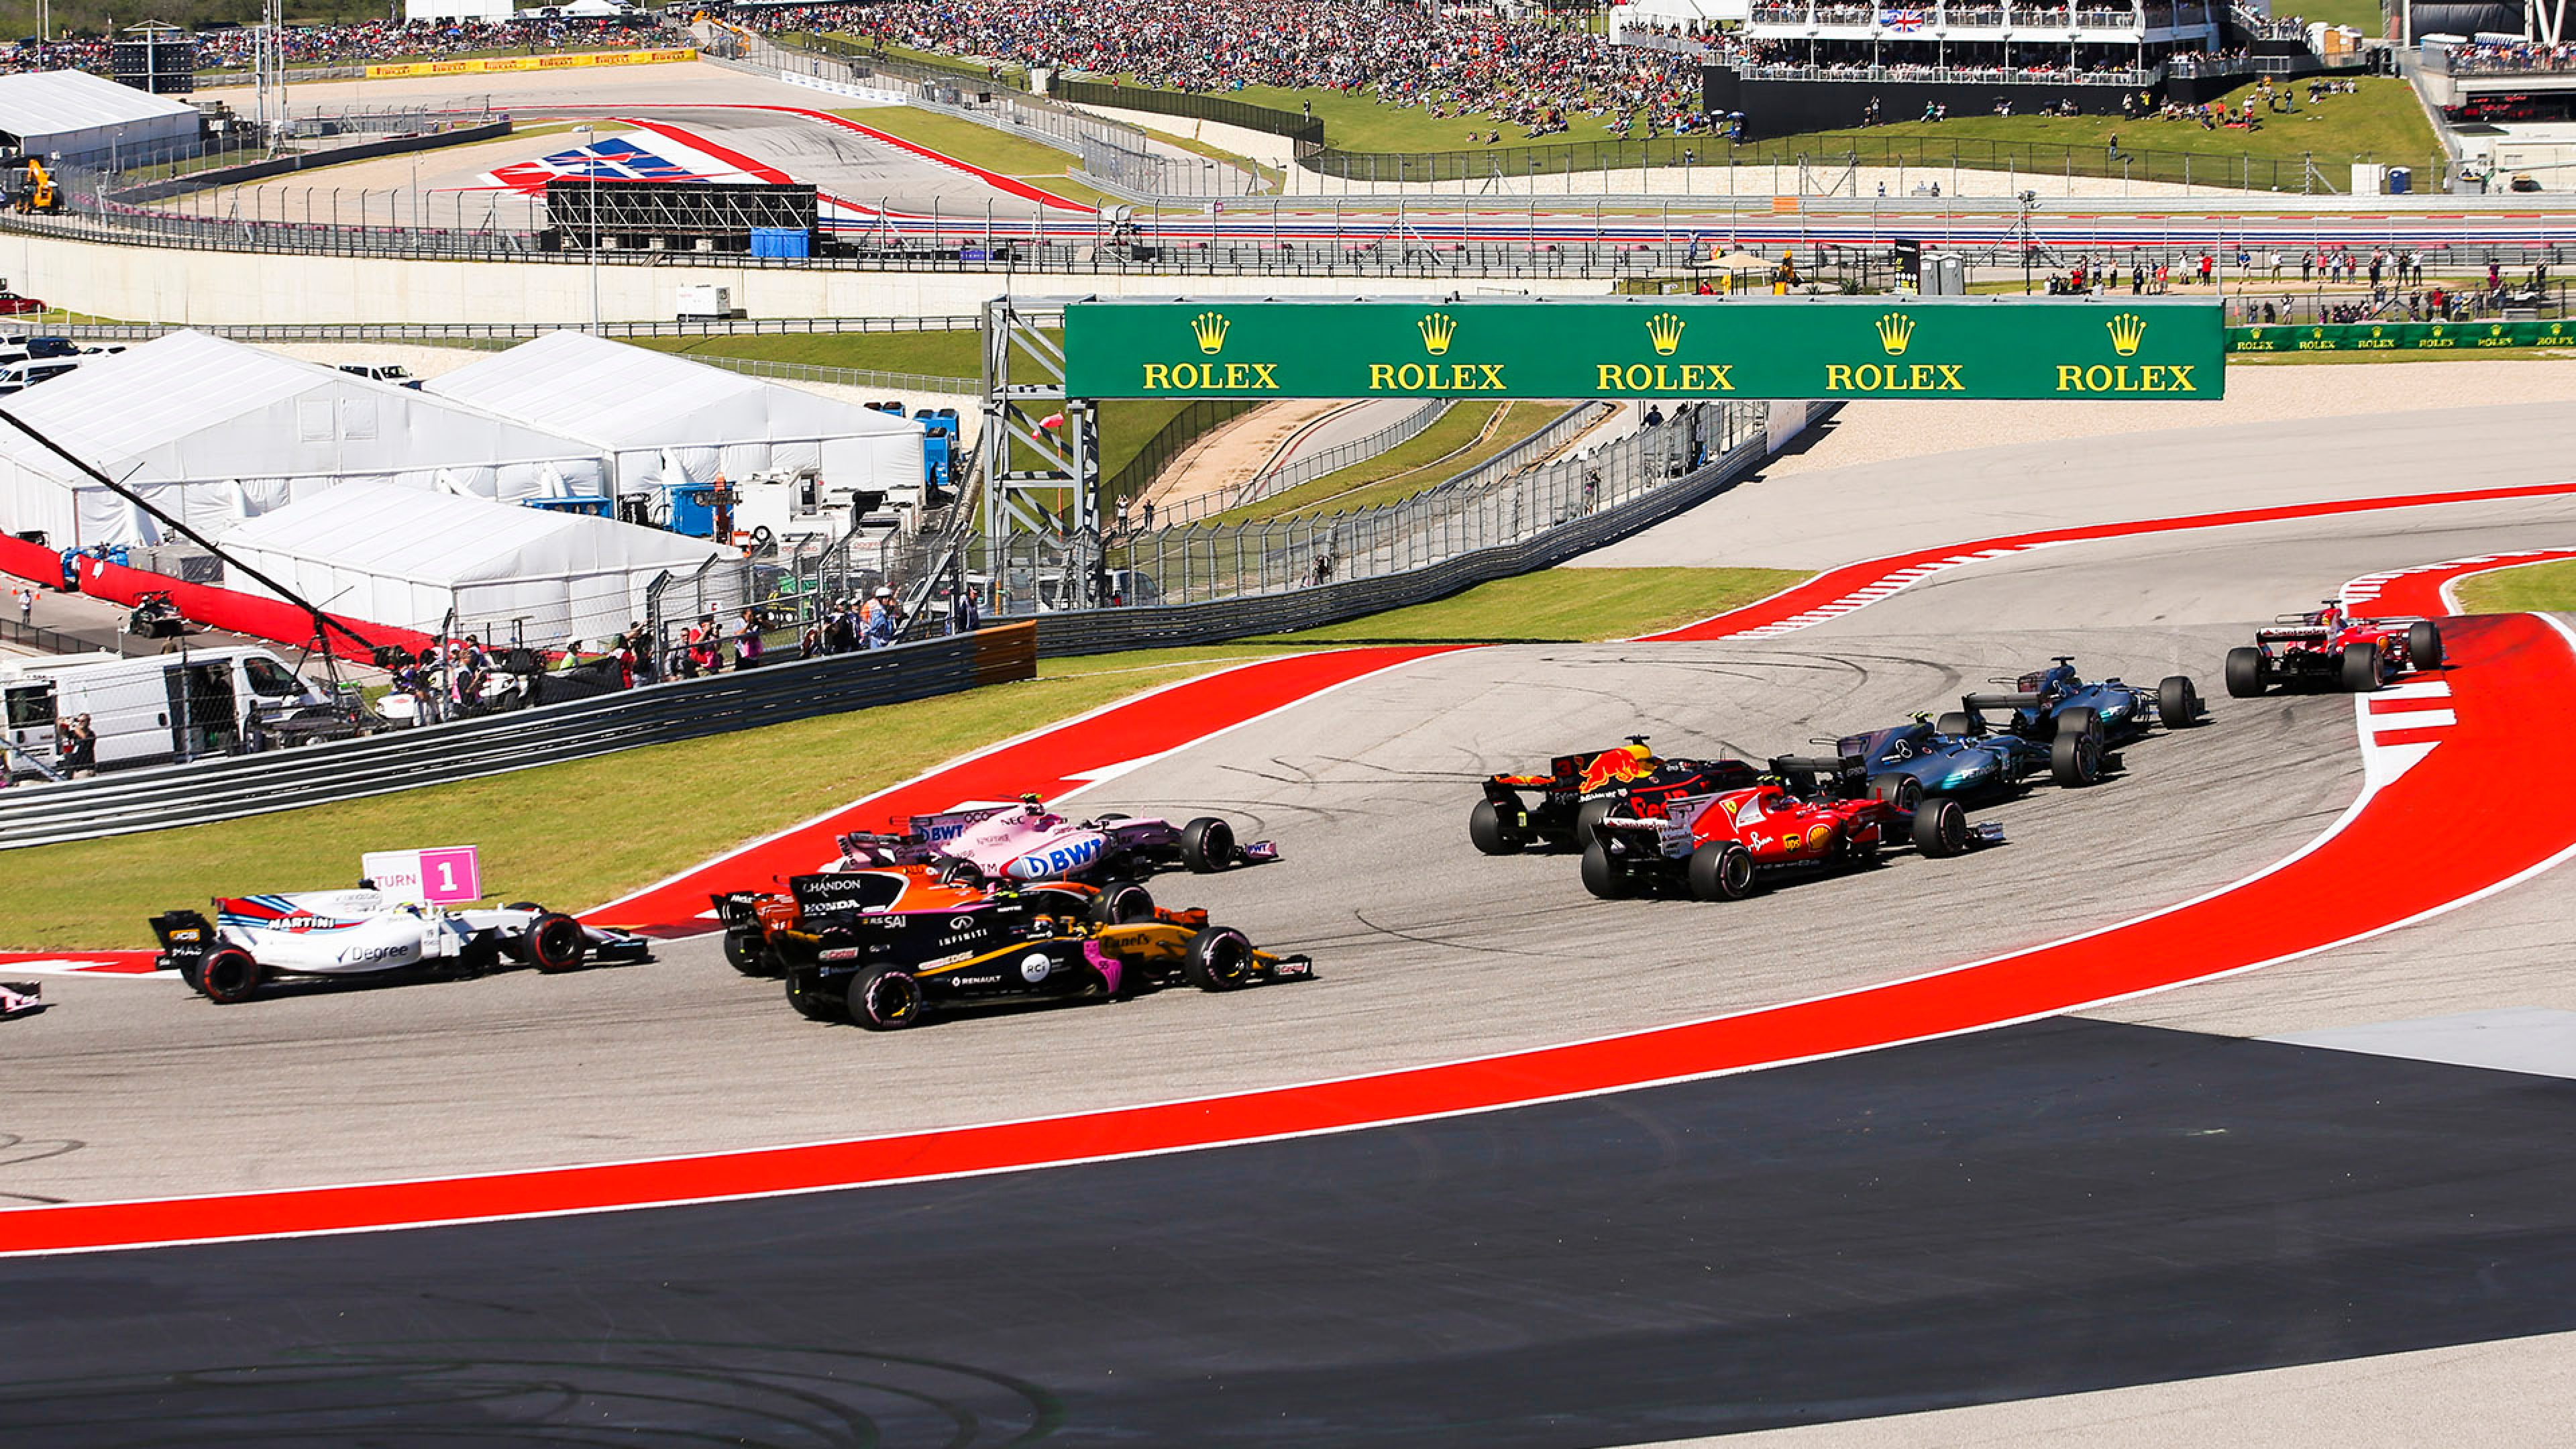 United States Grand Prix >> United States Grand Prix 2019 F1 Race